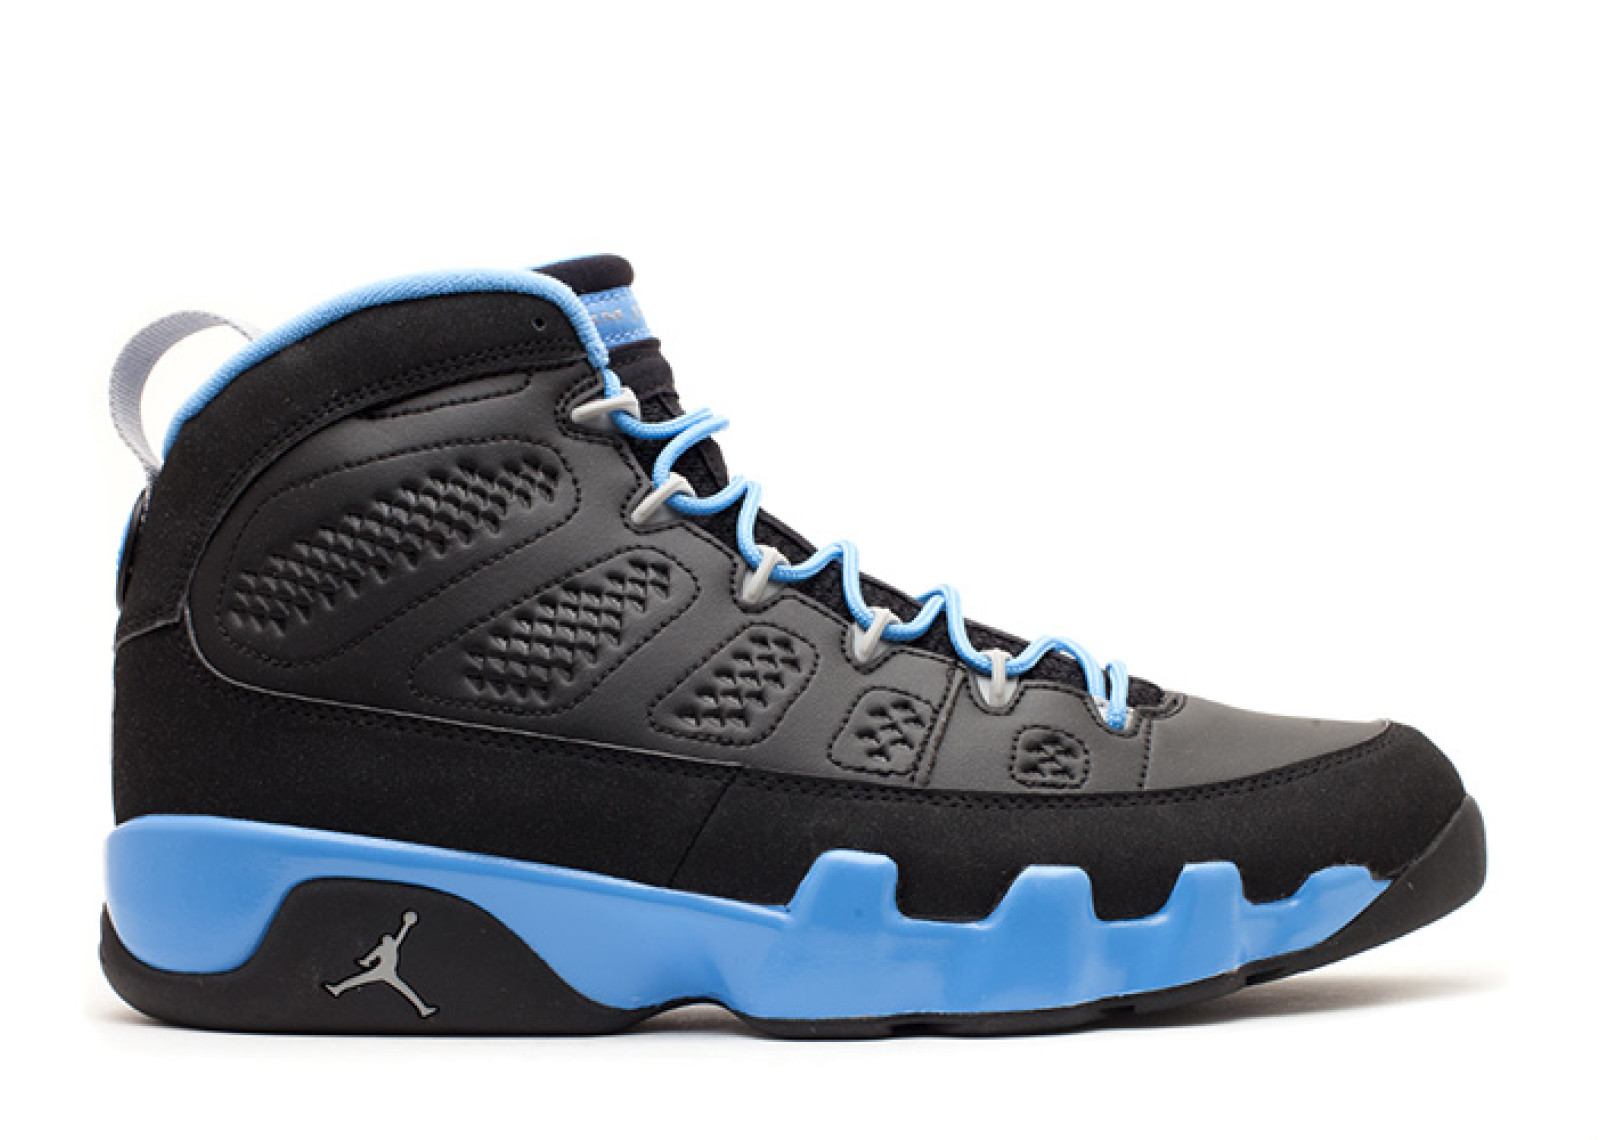 best sneakers f8996 23bf6 Air Jordan - Men - Air Jordan 9 Retro 'Slim Jenkins' - 302370-045 - Size 14